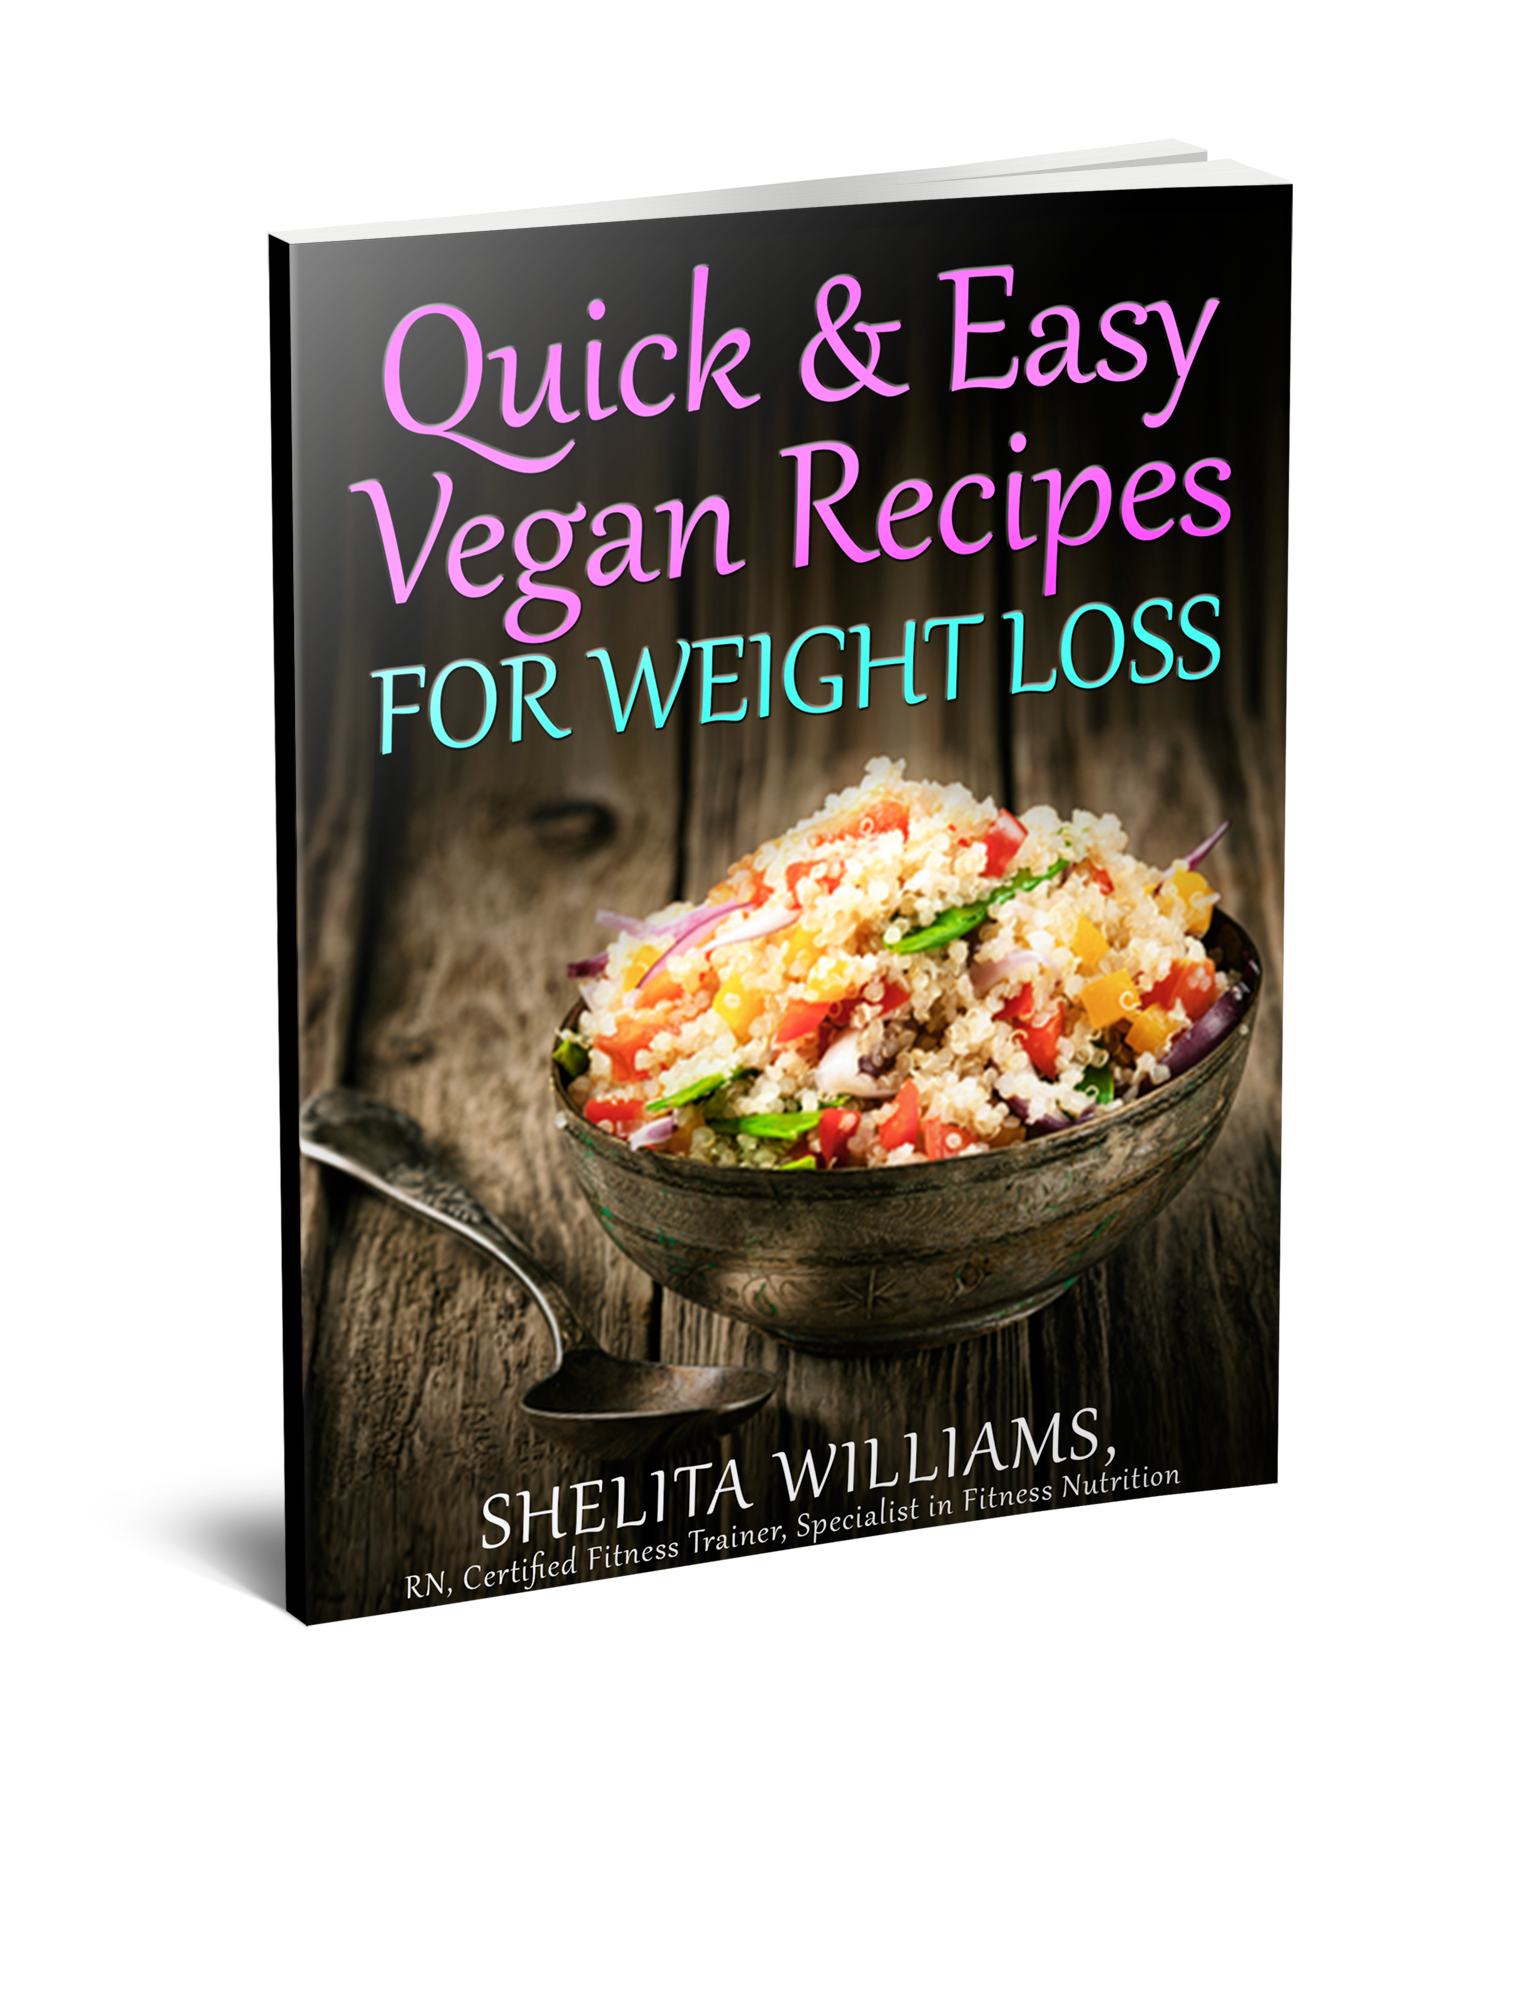 Quick & Easy Vegan Recipes for Weight Loss! One Time Offer